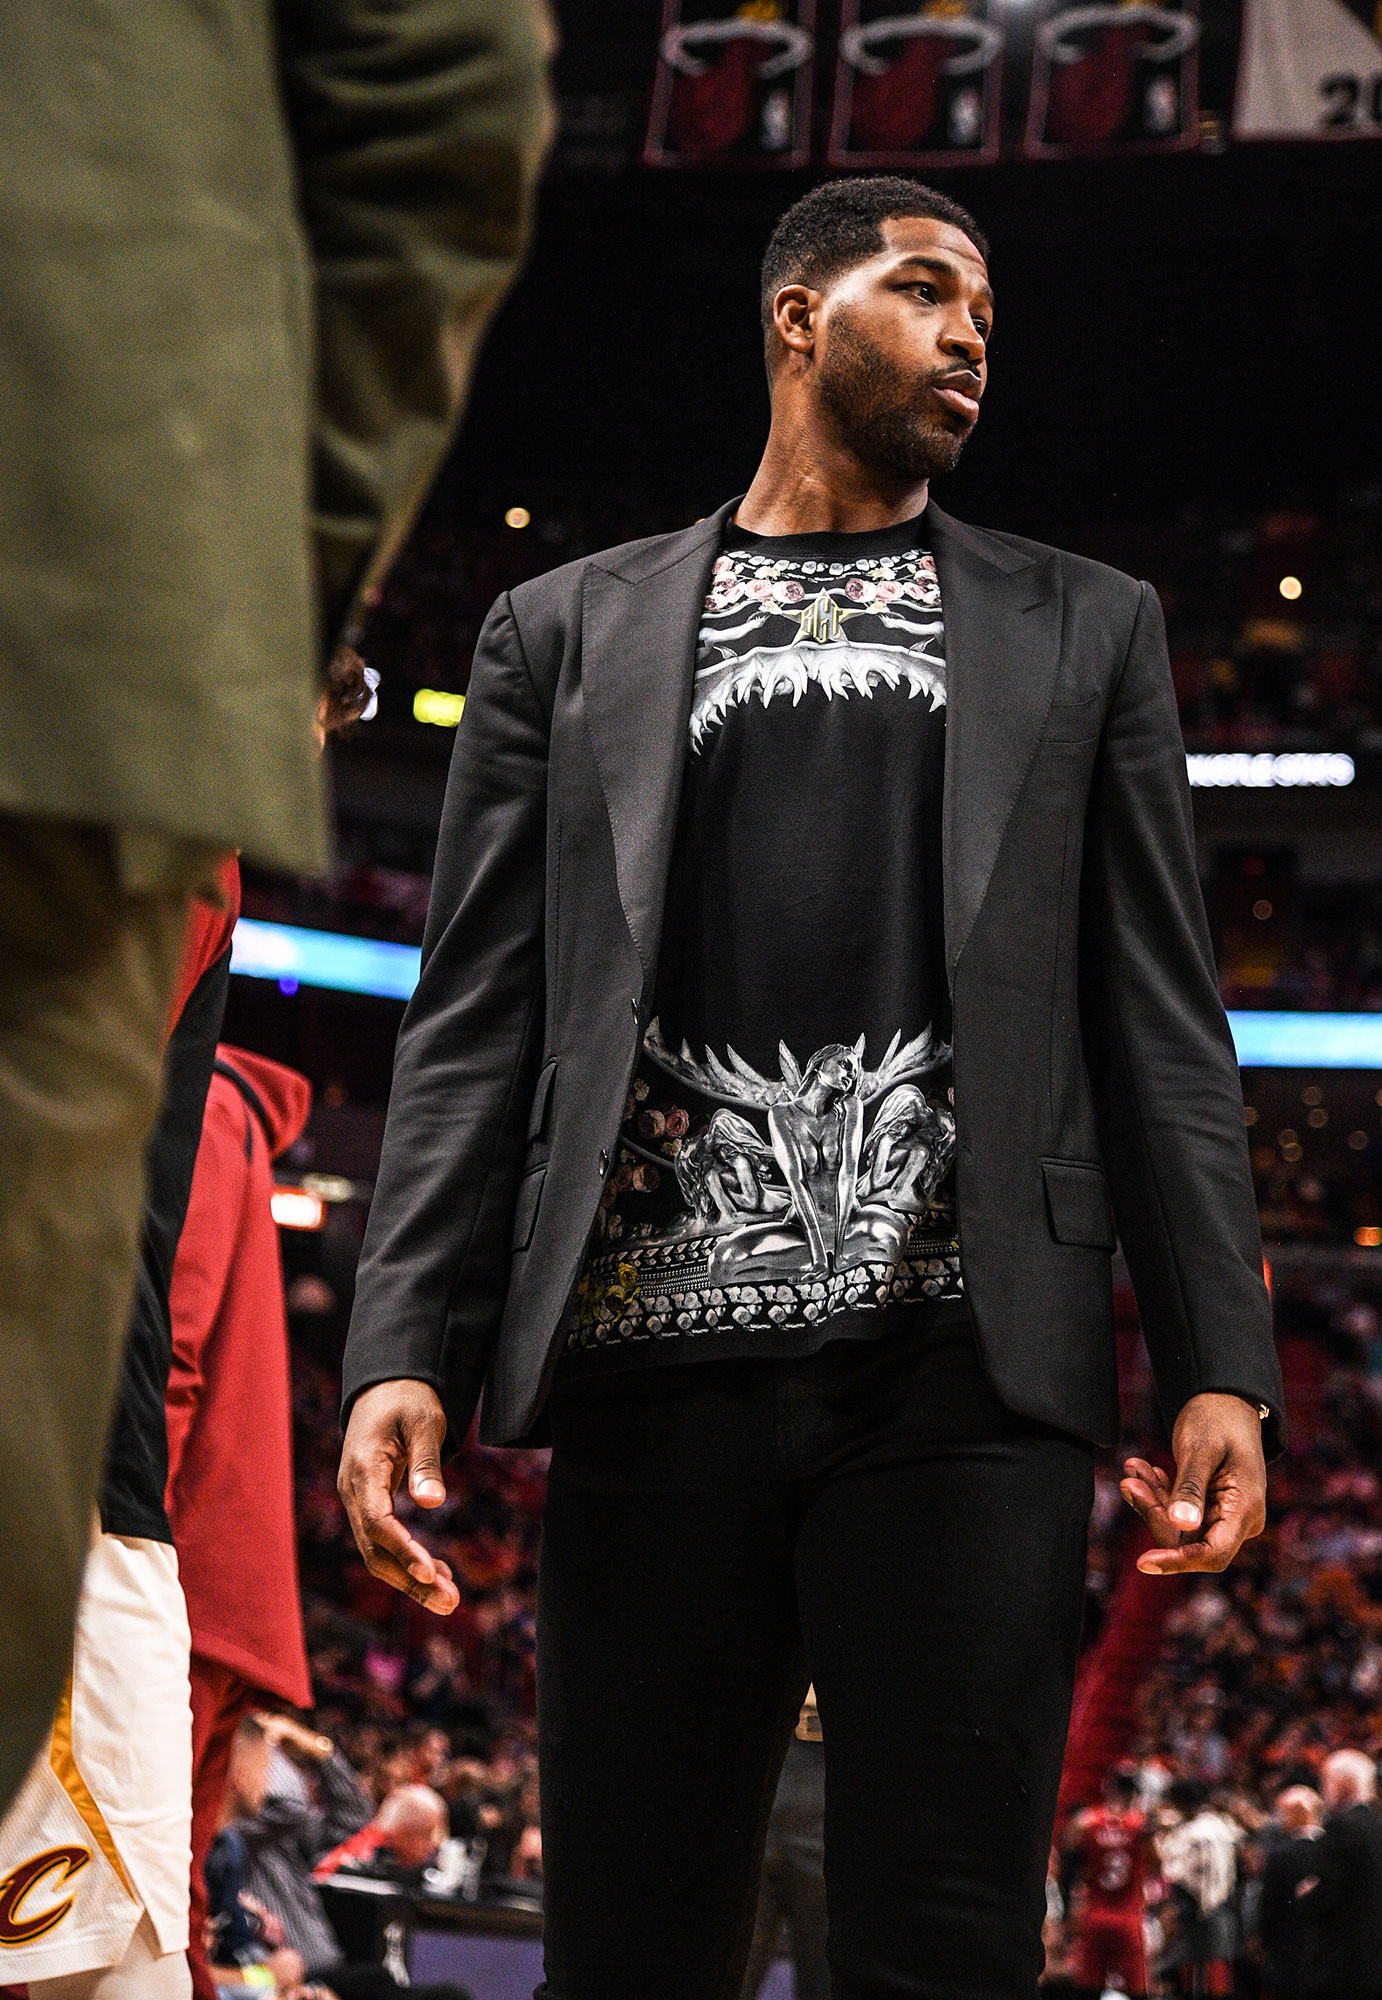 Jordyn Woods Returns to Work a Month After Tristan Thompson Cheating Scandal - Tristan Thompson of the Cleveland Cavaliers on the bench during the in the second half against the Miami Heat at American Airlines Arena on March 8, 2019 in Miami, Florida.